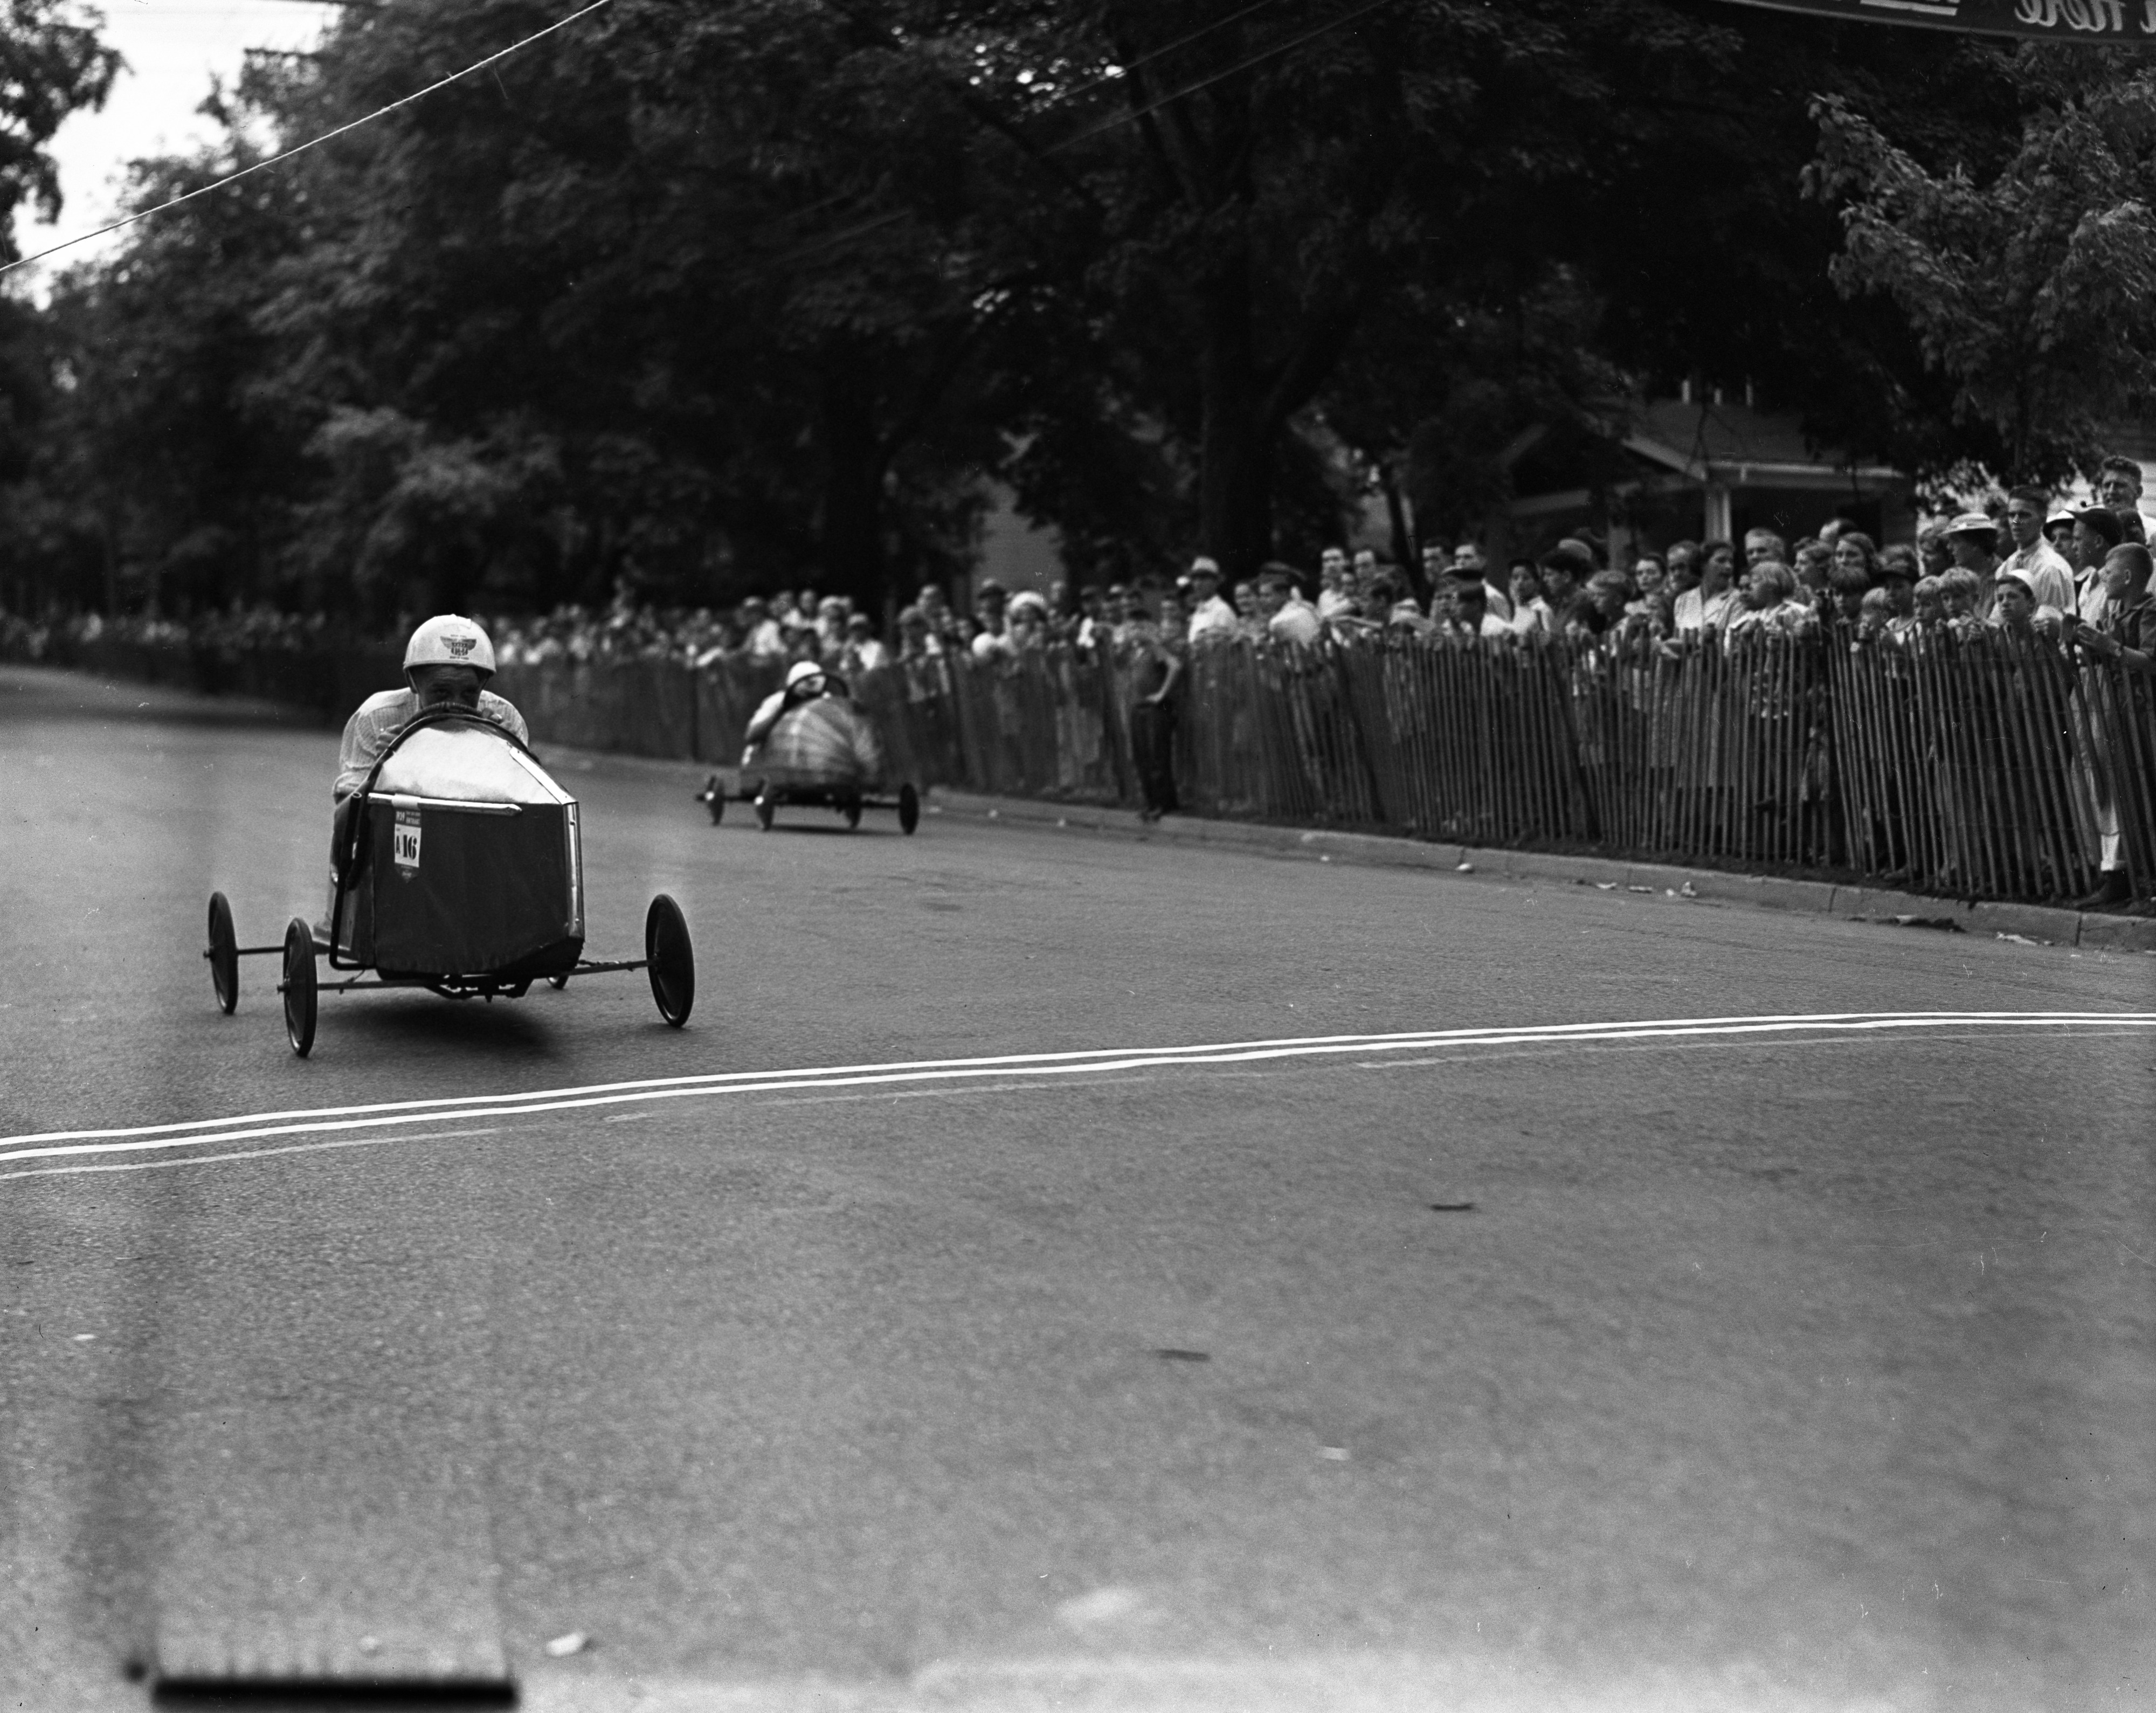 Soap Box Derby Finish Line, July 1939 image